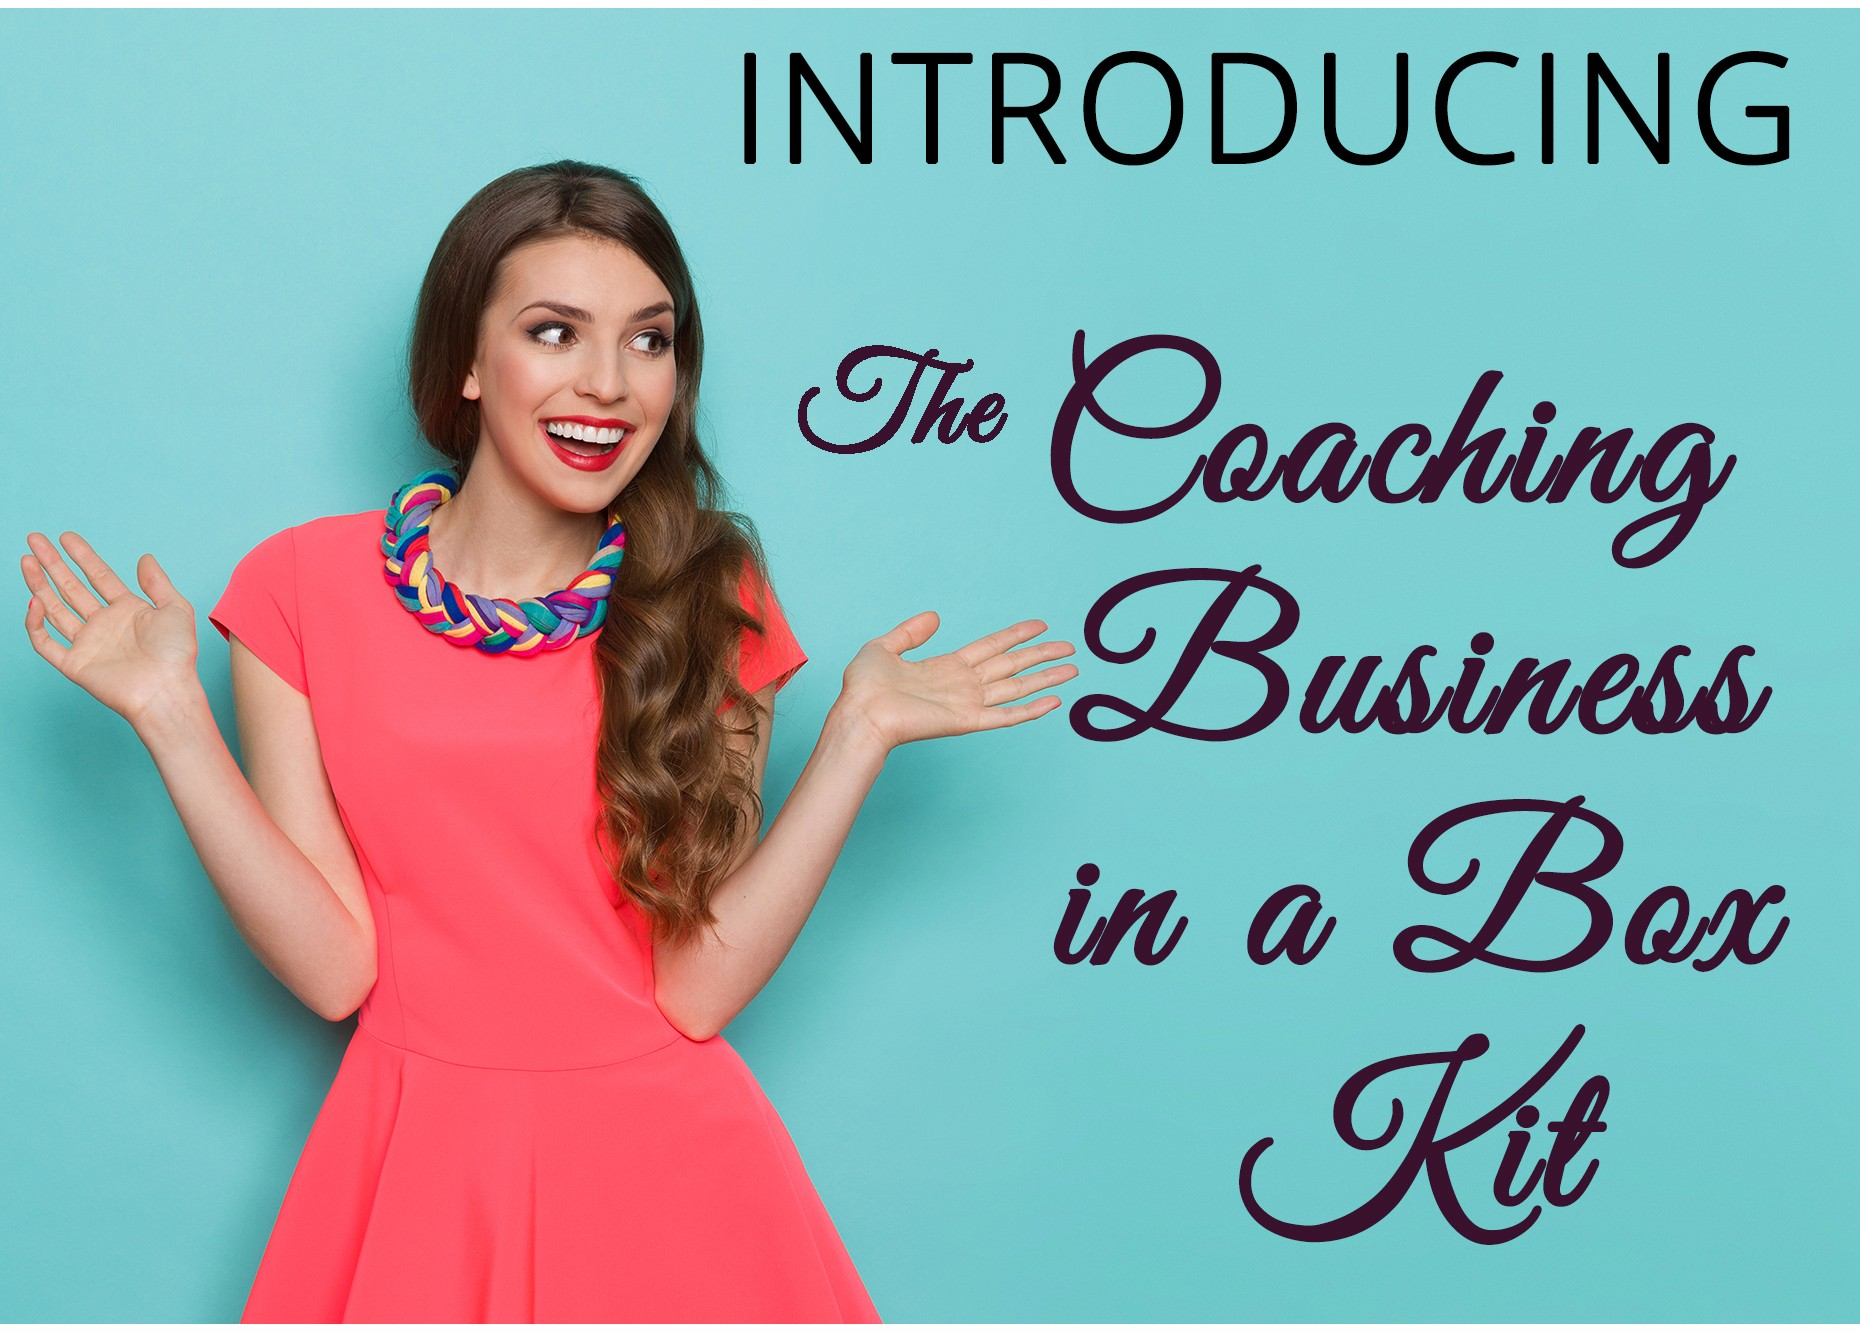 The coaching business in a box kit womanifesting universeity coaching business in a box kit templates accmission Images